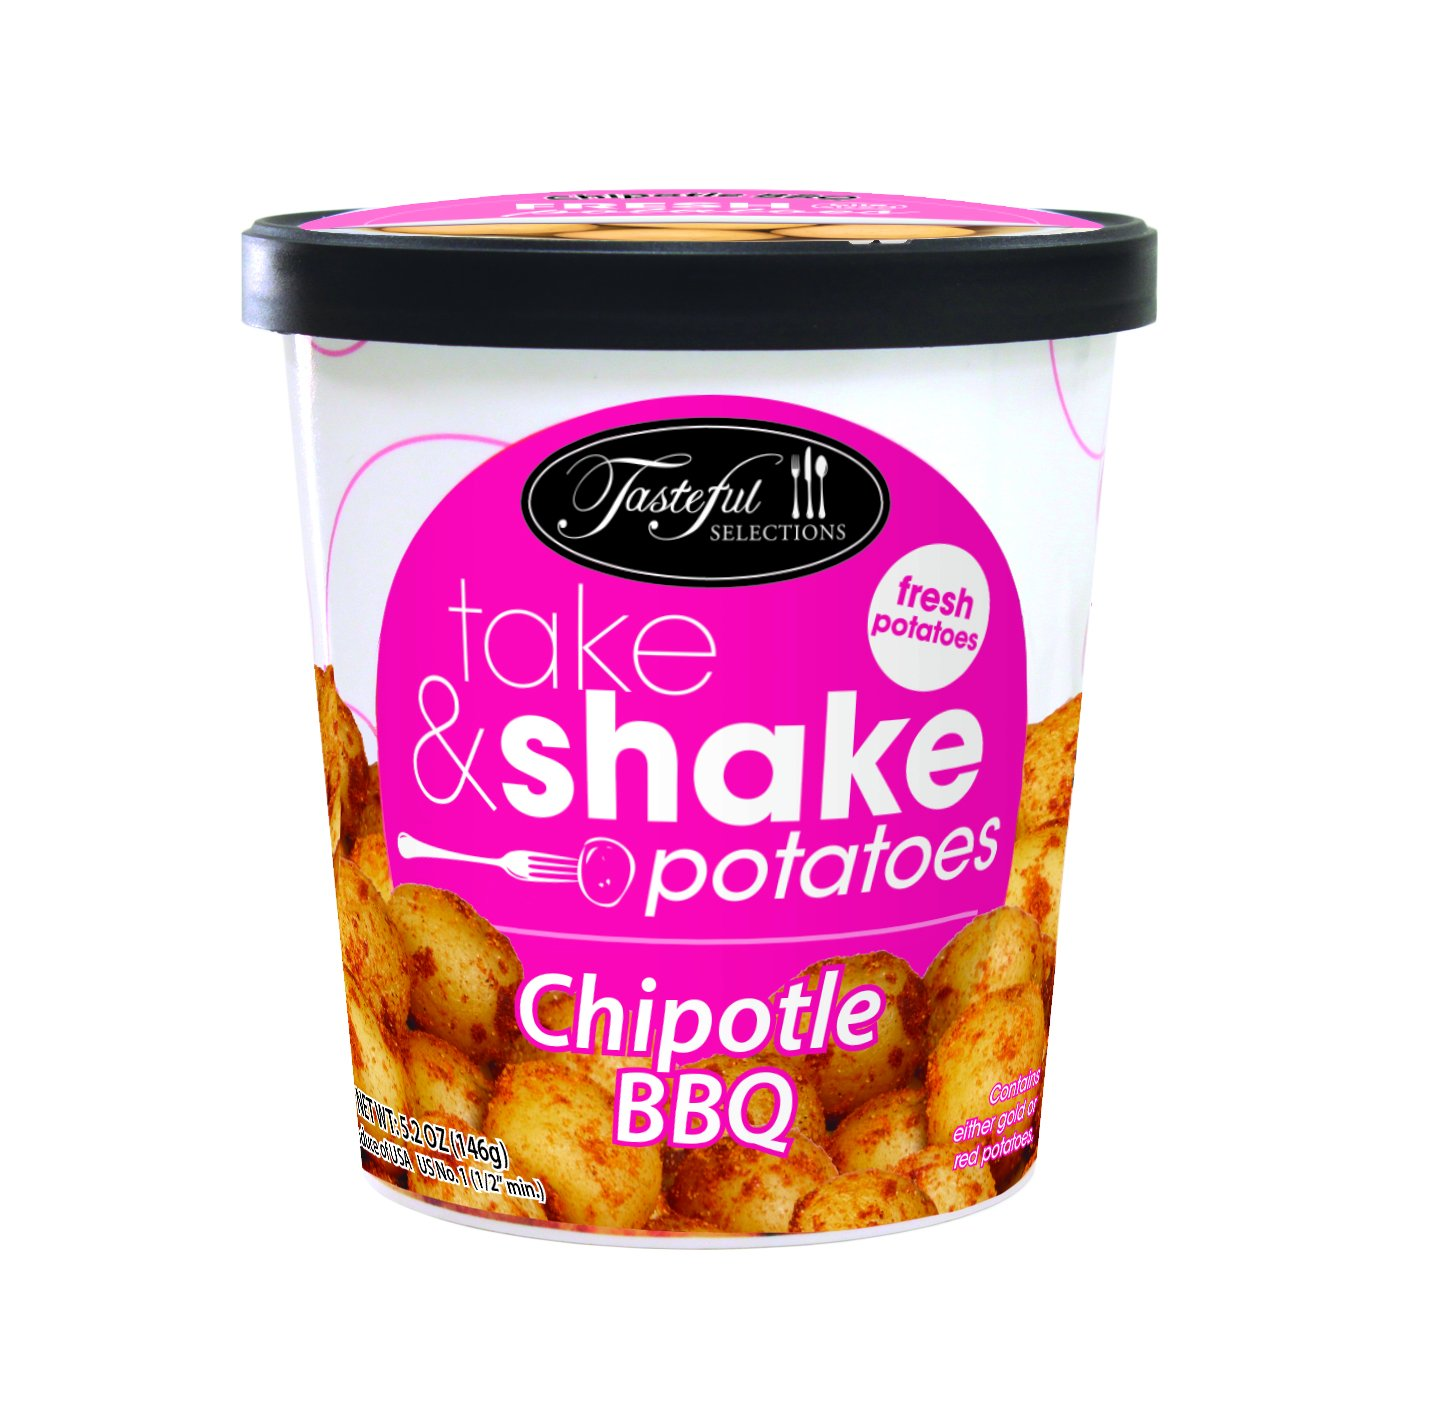 Tasteful Selections Take & Shake Chipotle BBQ, 5.2 oz(us)